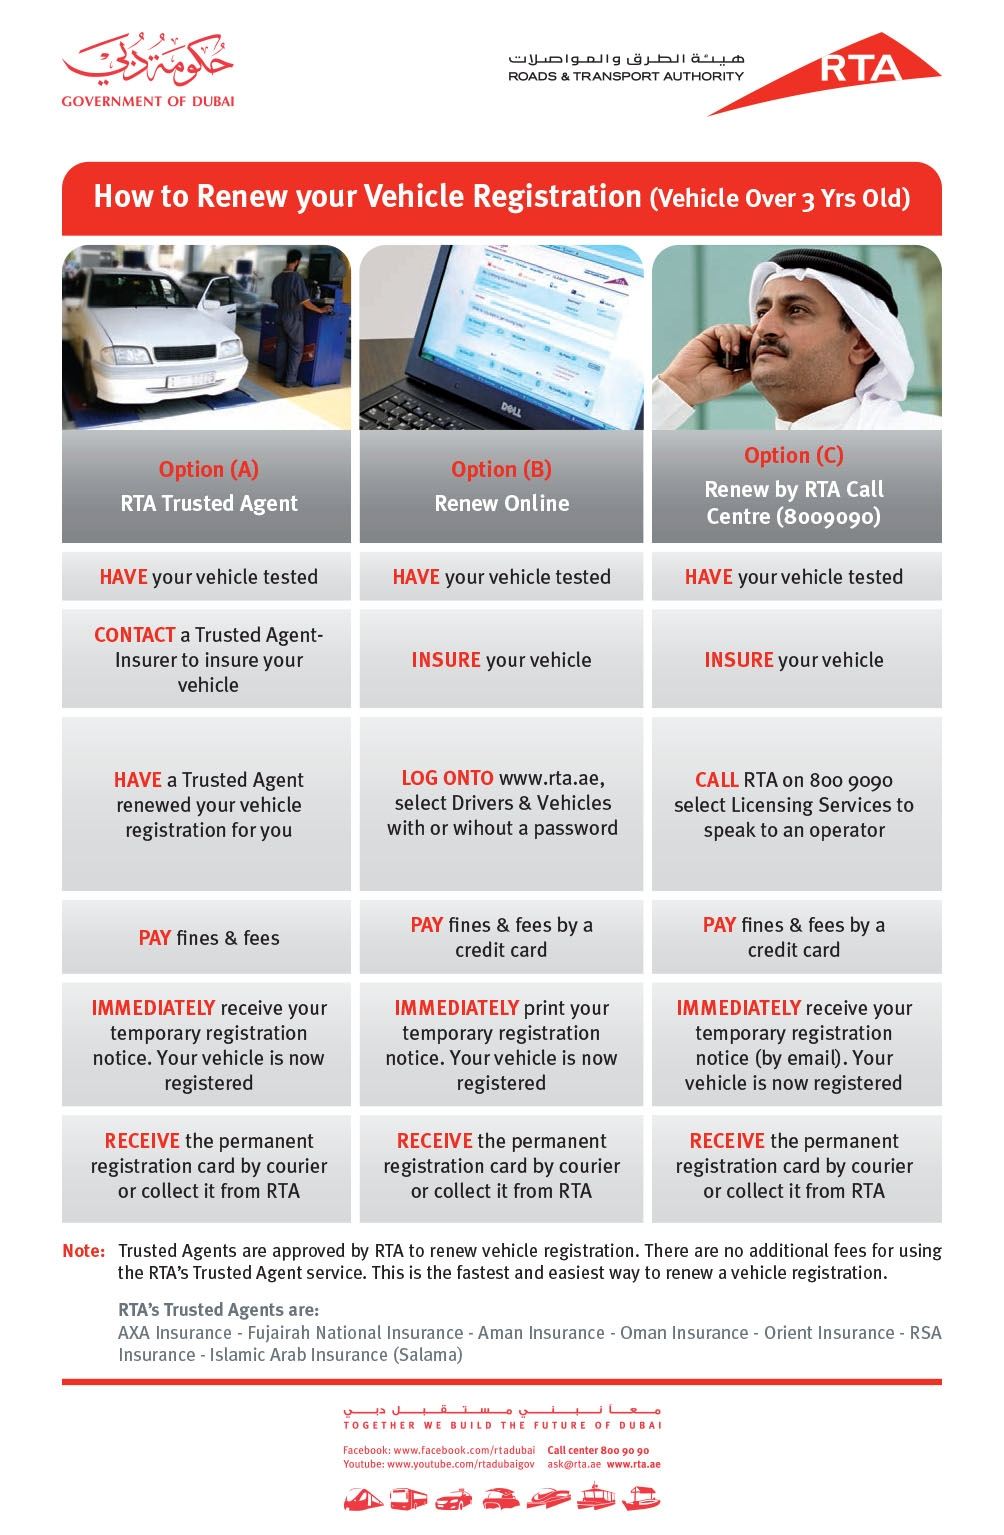 Roadways - The Official Portal of the UAE Government